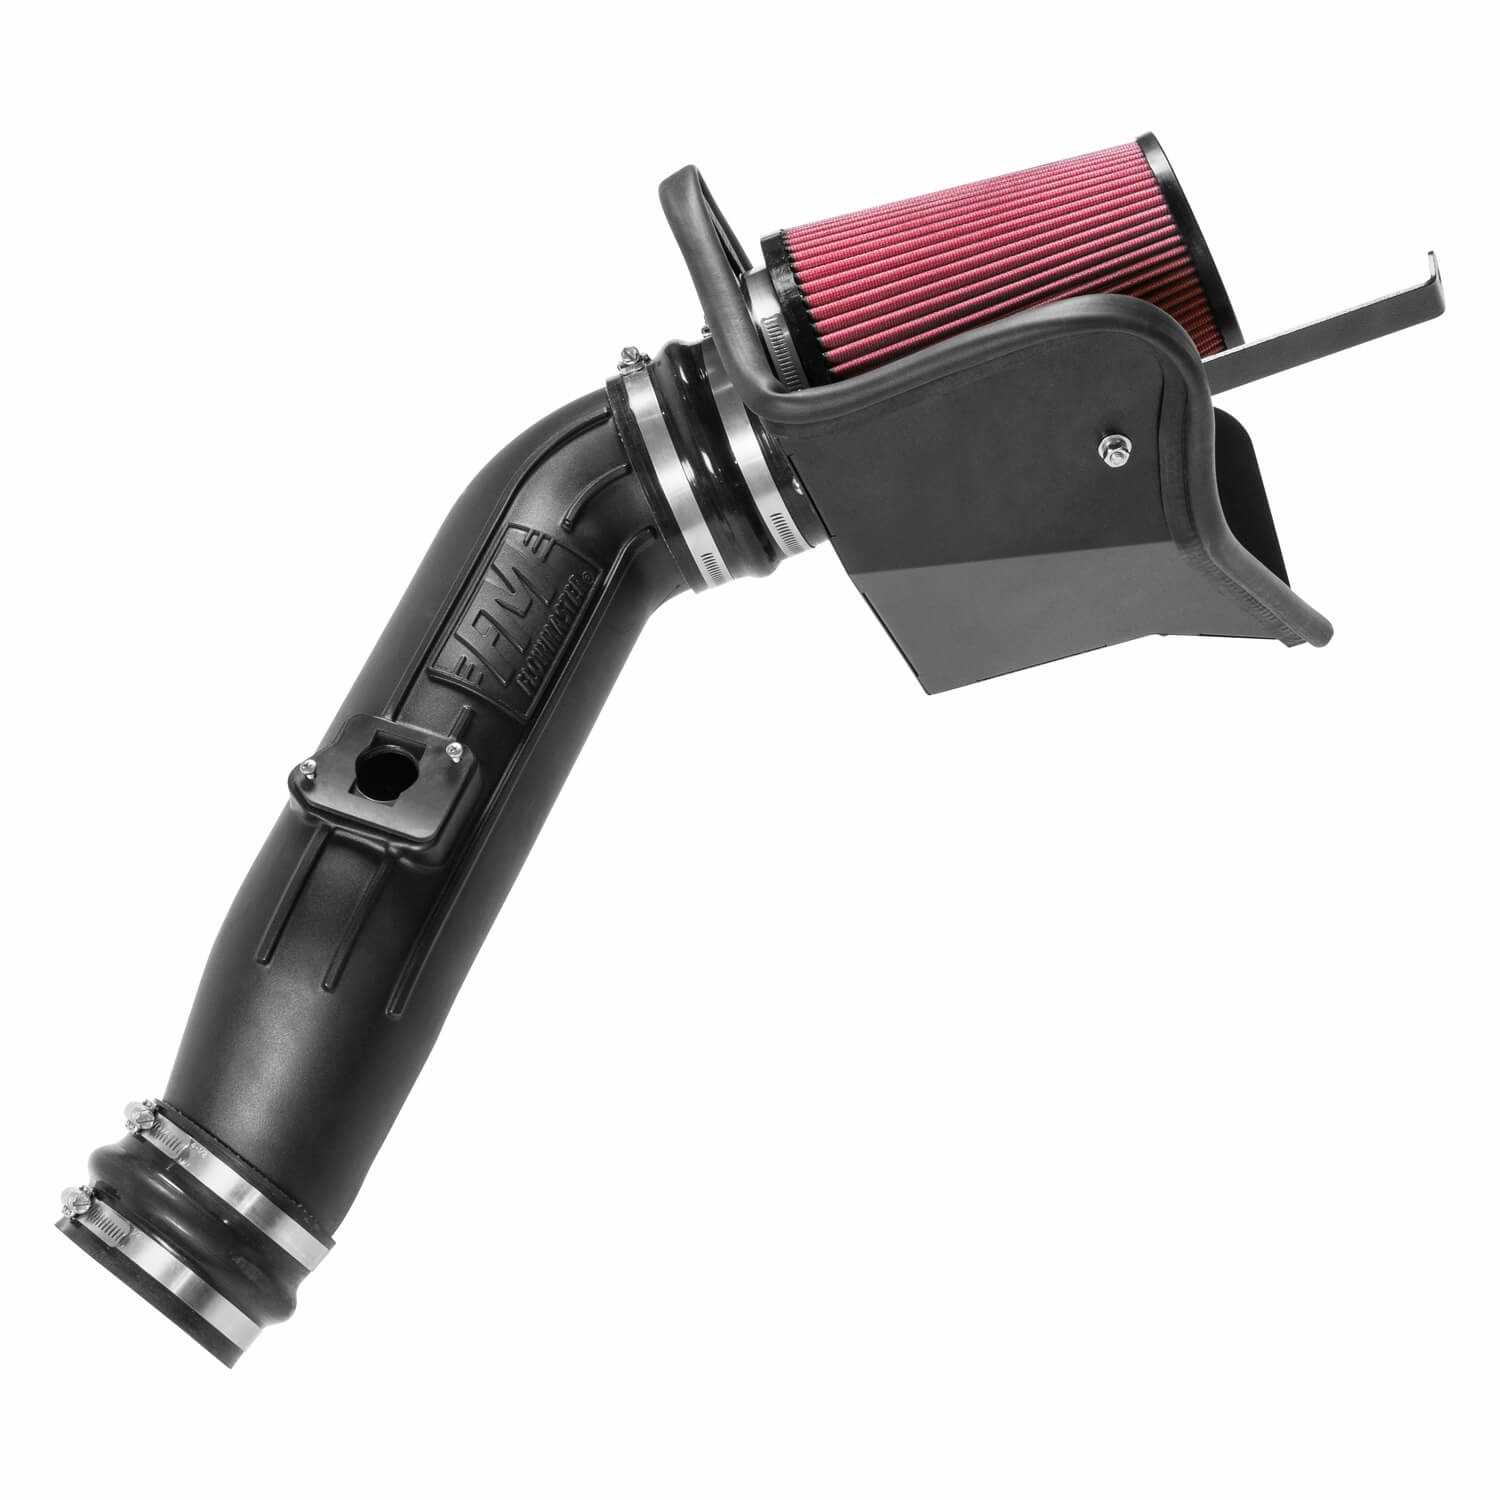 615123 Flowmaster Delta Force Cold Air Intake Kit